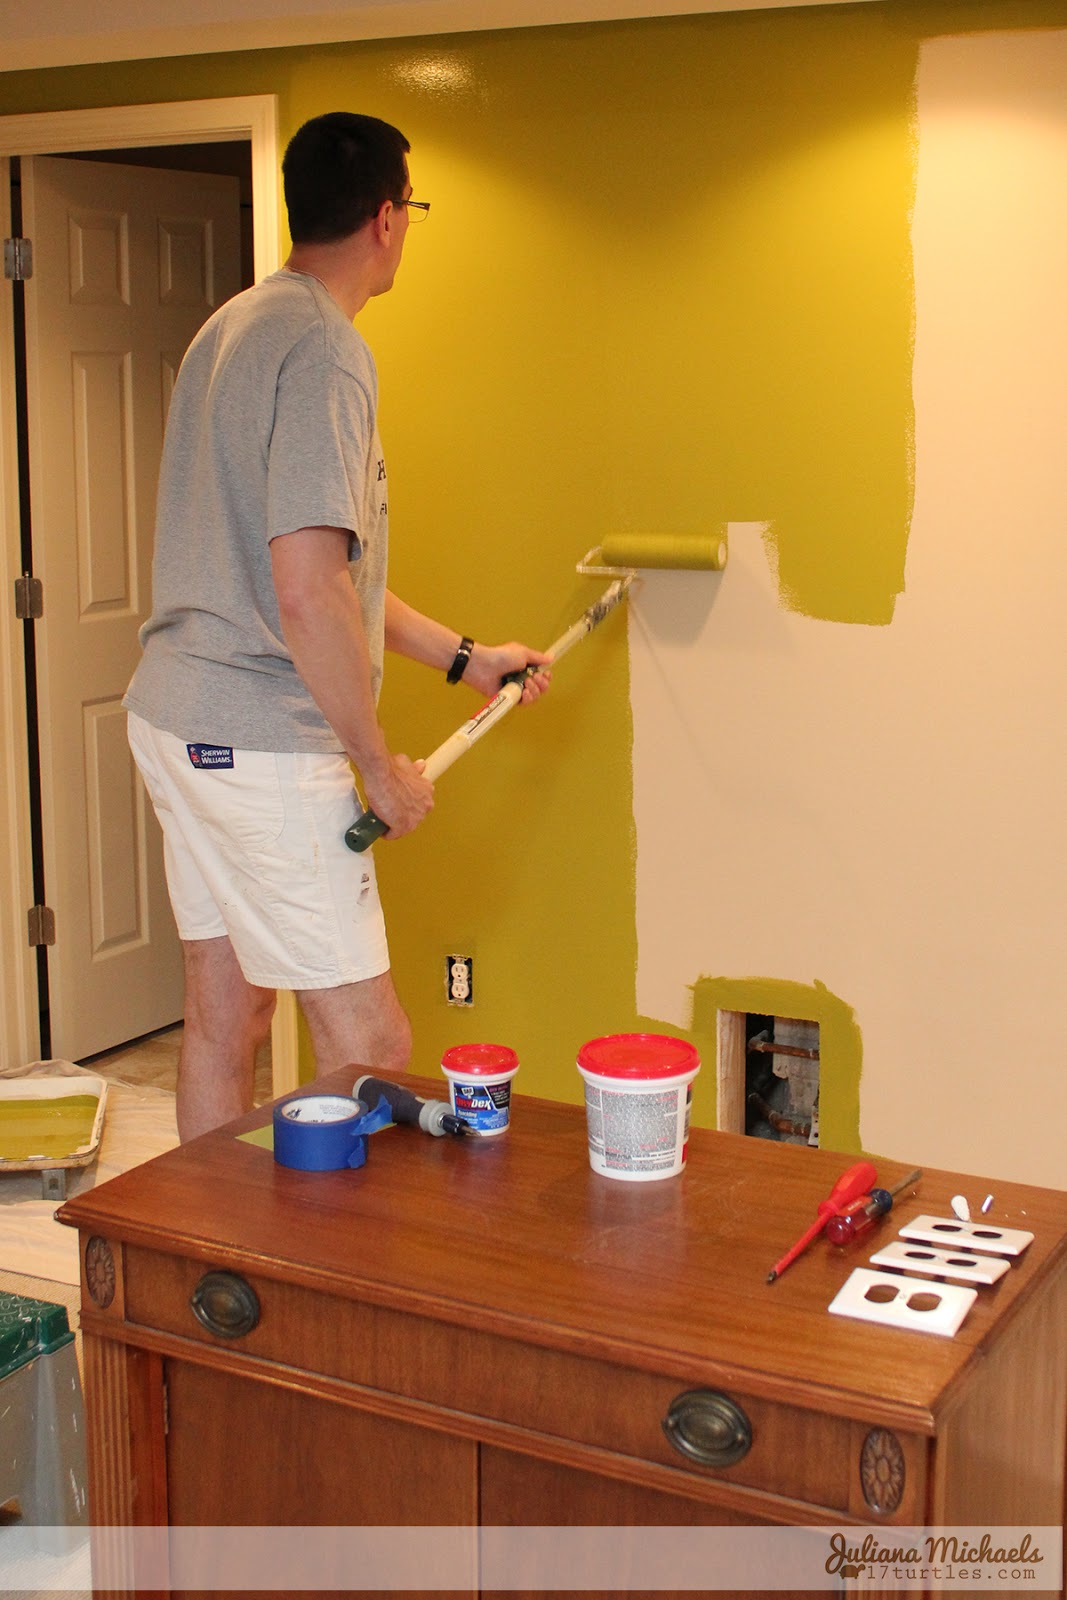 Juliana Michaels Scrapbook Room Makeover During Painting The Walls #sprizoflime